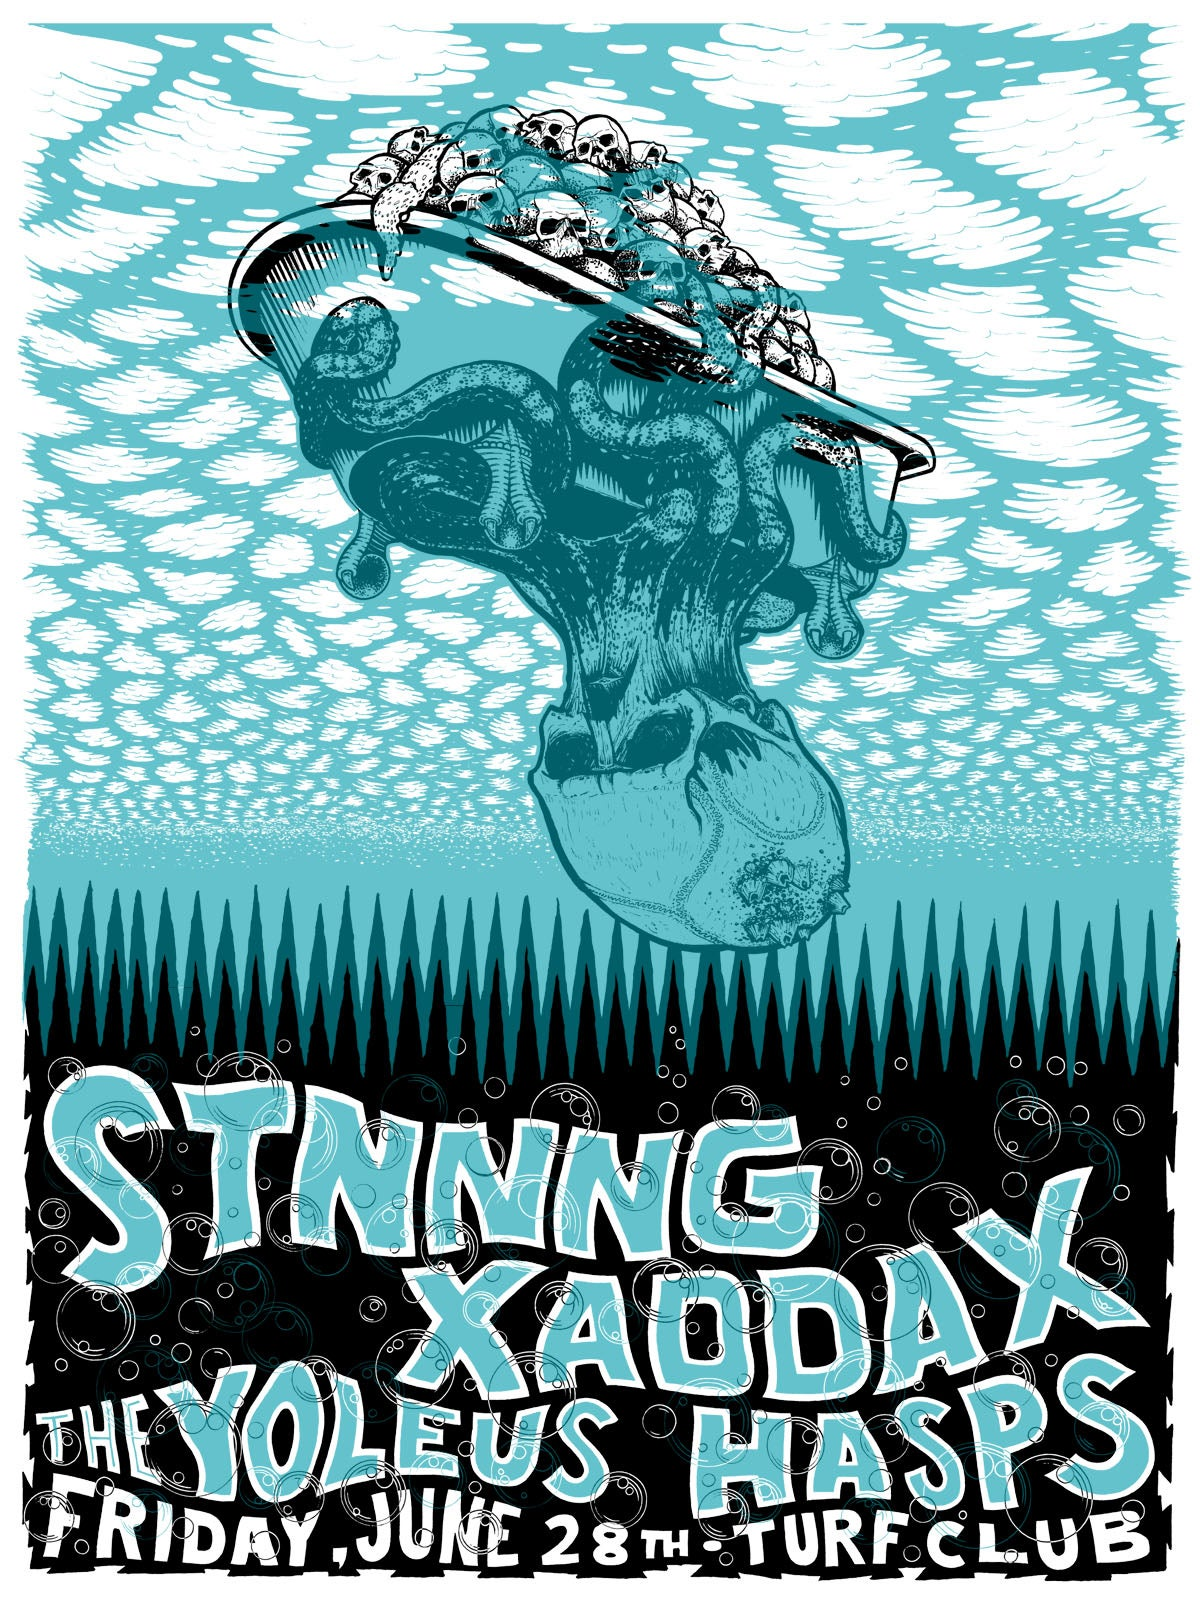 Image of STNNNG, Xaddax, The Yoleus, Hasps, Turf Club, St. Paul, MN 6/28/13